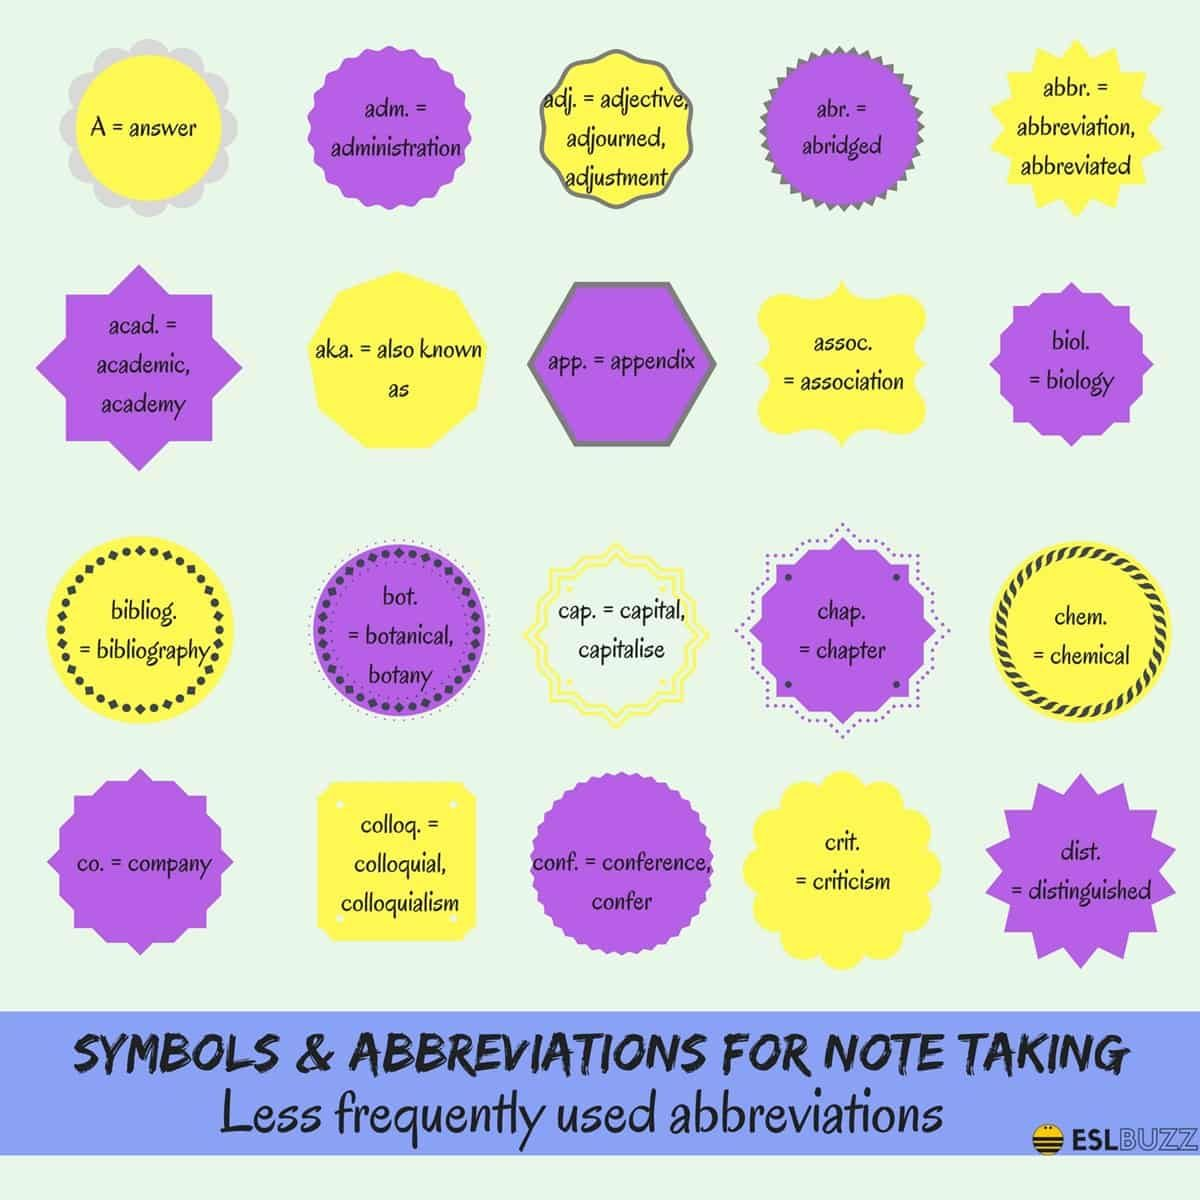 100 Helpful Texting Abbreviations For Speedy Note Taking